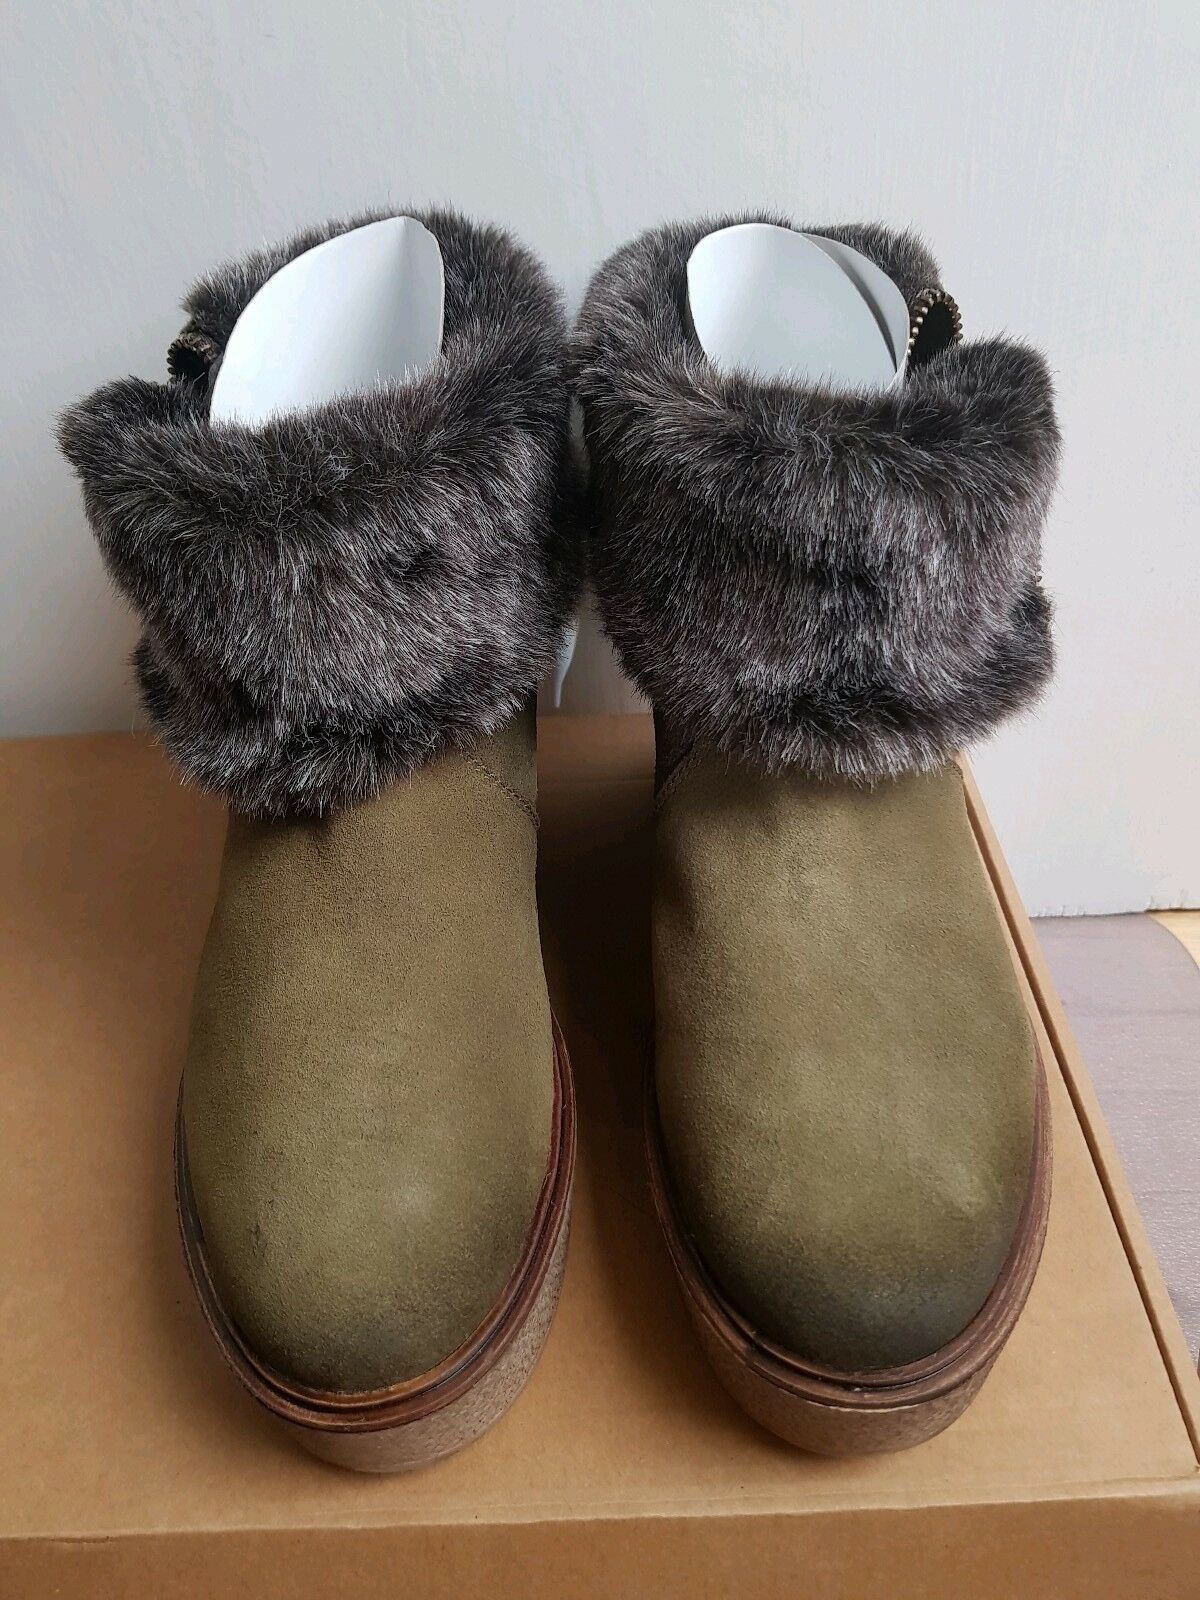 DNA Forest Grün Suede Fur Lined Zip Fold Over Wedge Stiefel UK 5 NIB